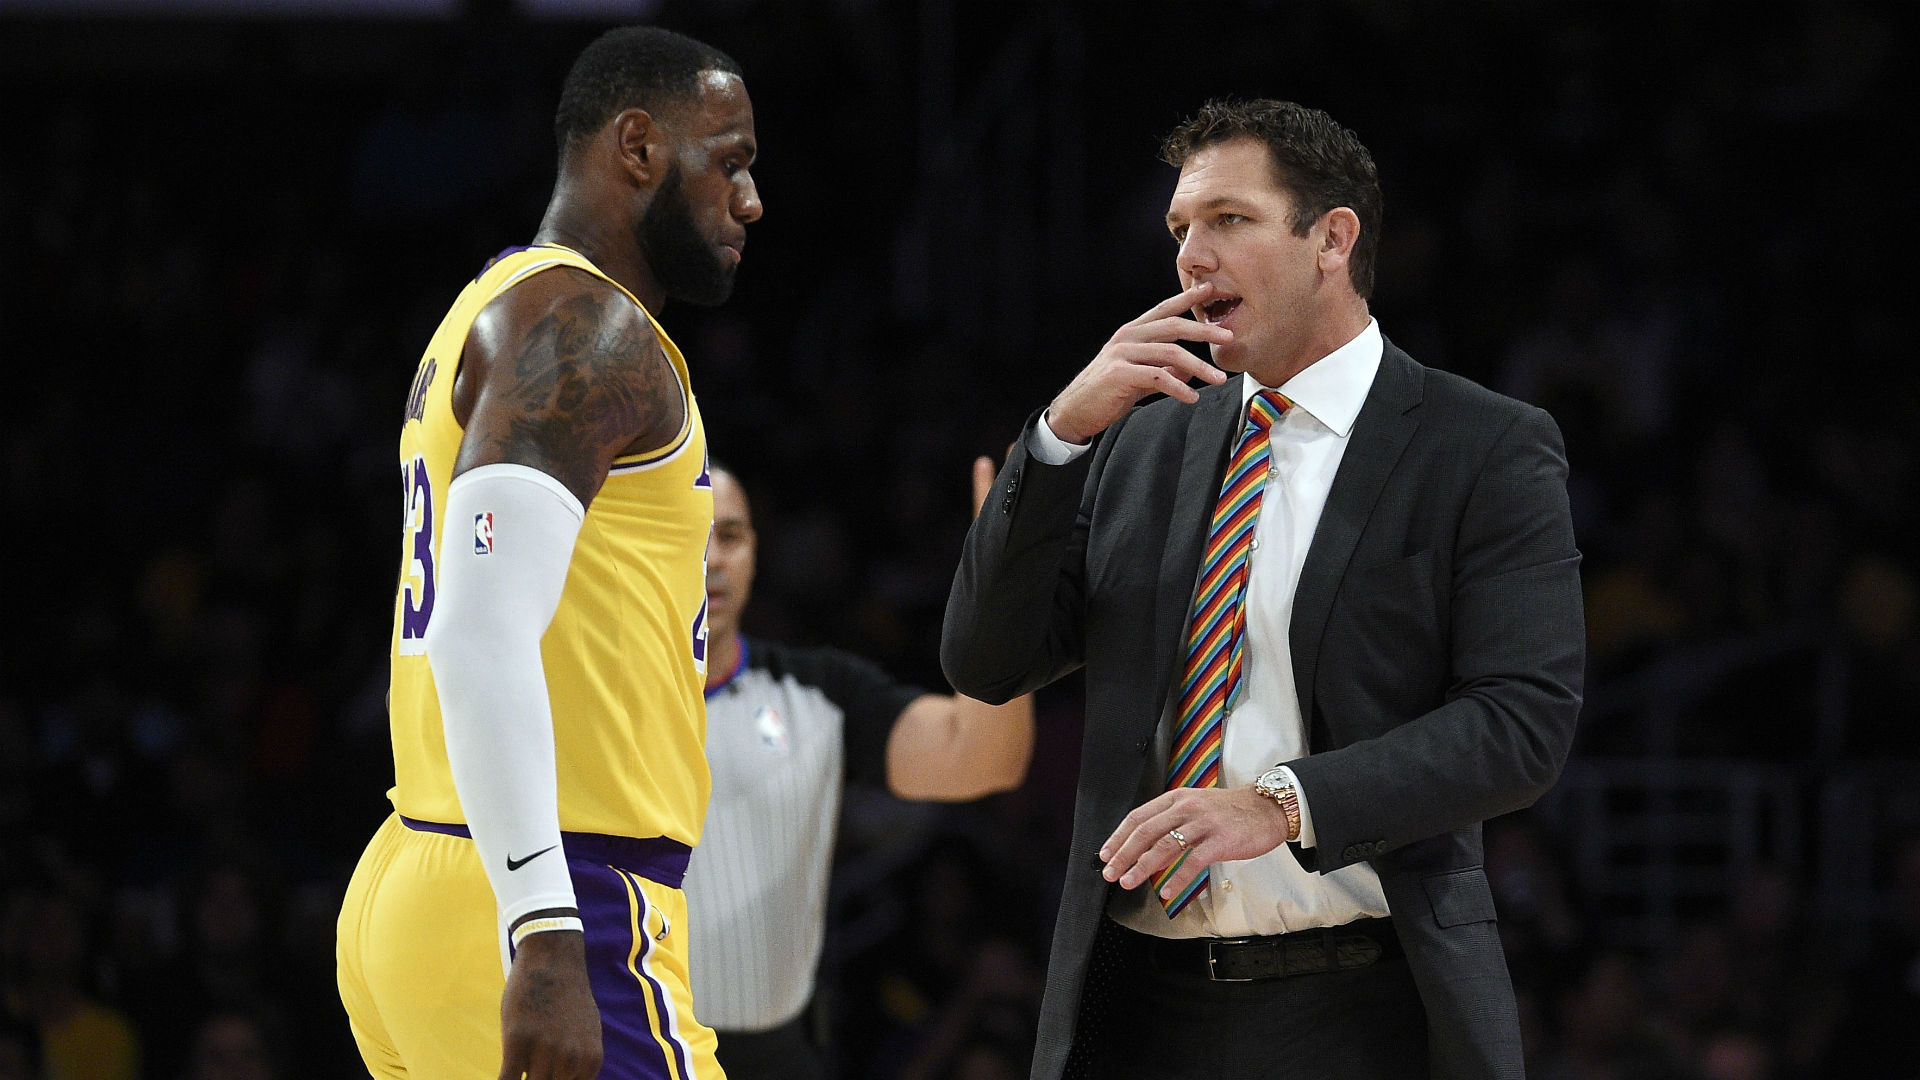 NBA trade deadline winners and losers: Elton Brand all-in with 76ers; Lakers left with tough questions